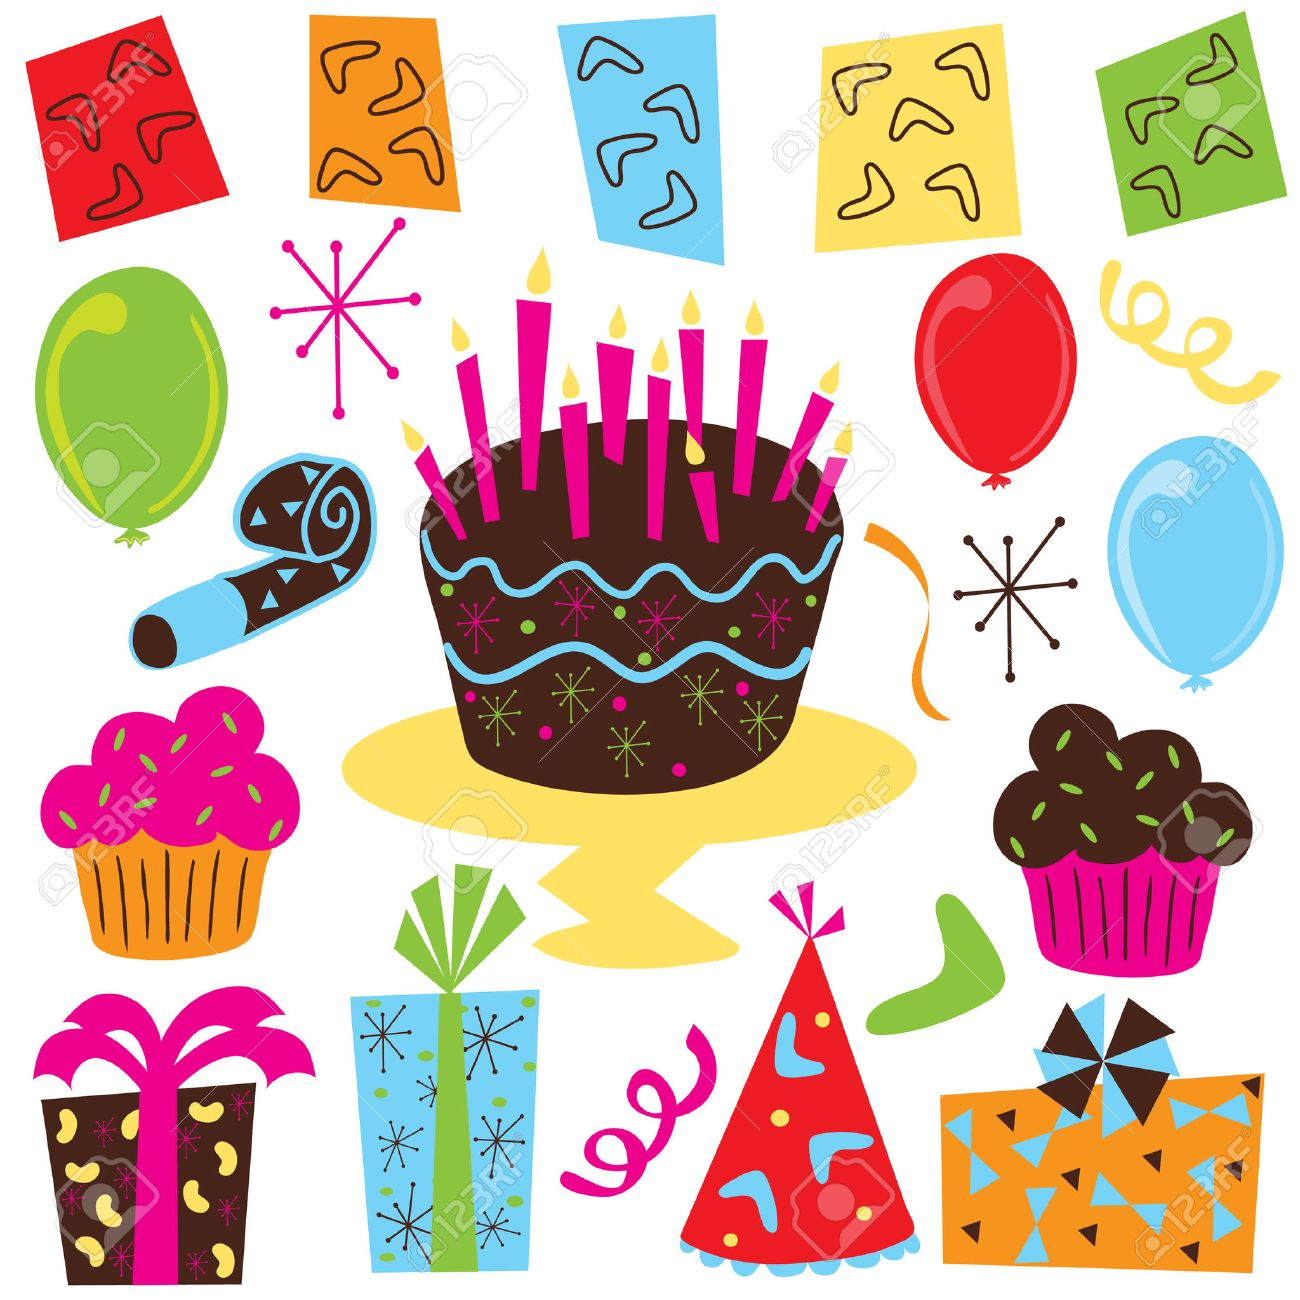 Retro Birthday Party Clipart With Birthday Cake Cupcakes Balloons Royalty Free Cliparts Vectors And Stock Illustration Image 4429715